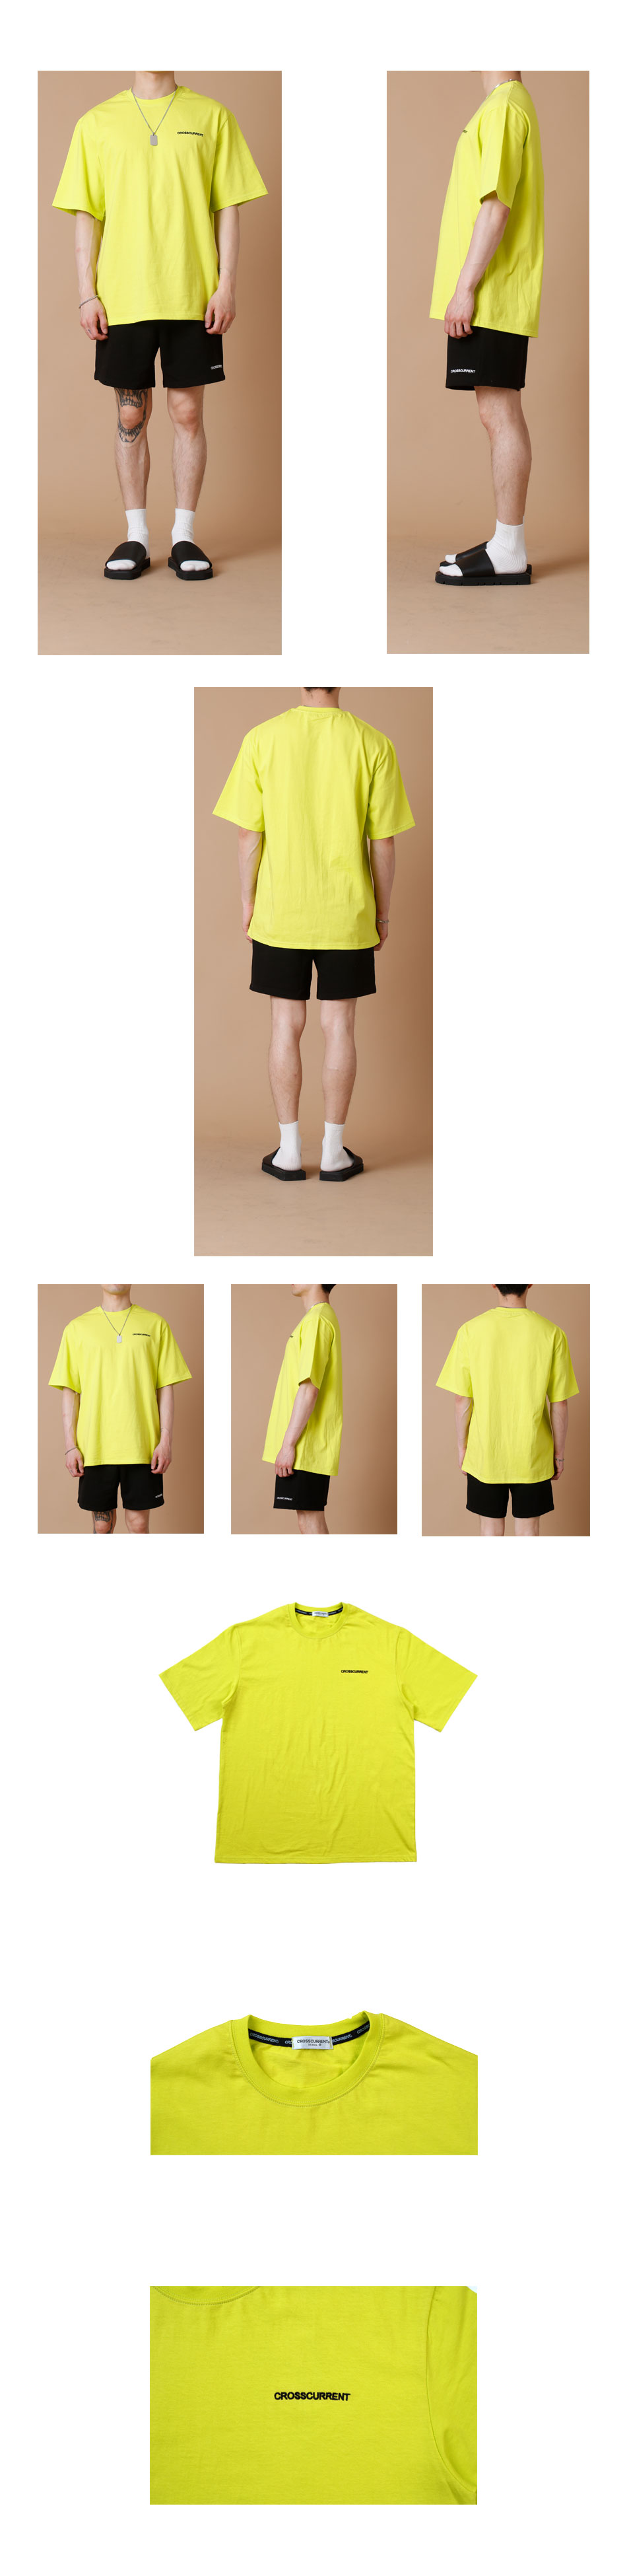 #crct00002-CCT-Small-Logo-Short-Sleeve-라임950.jpg